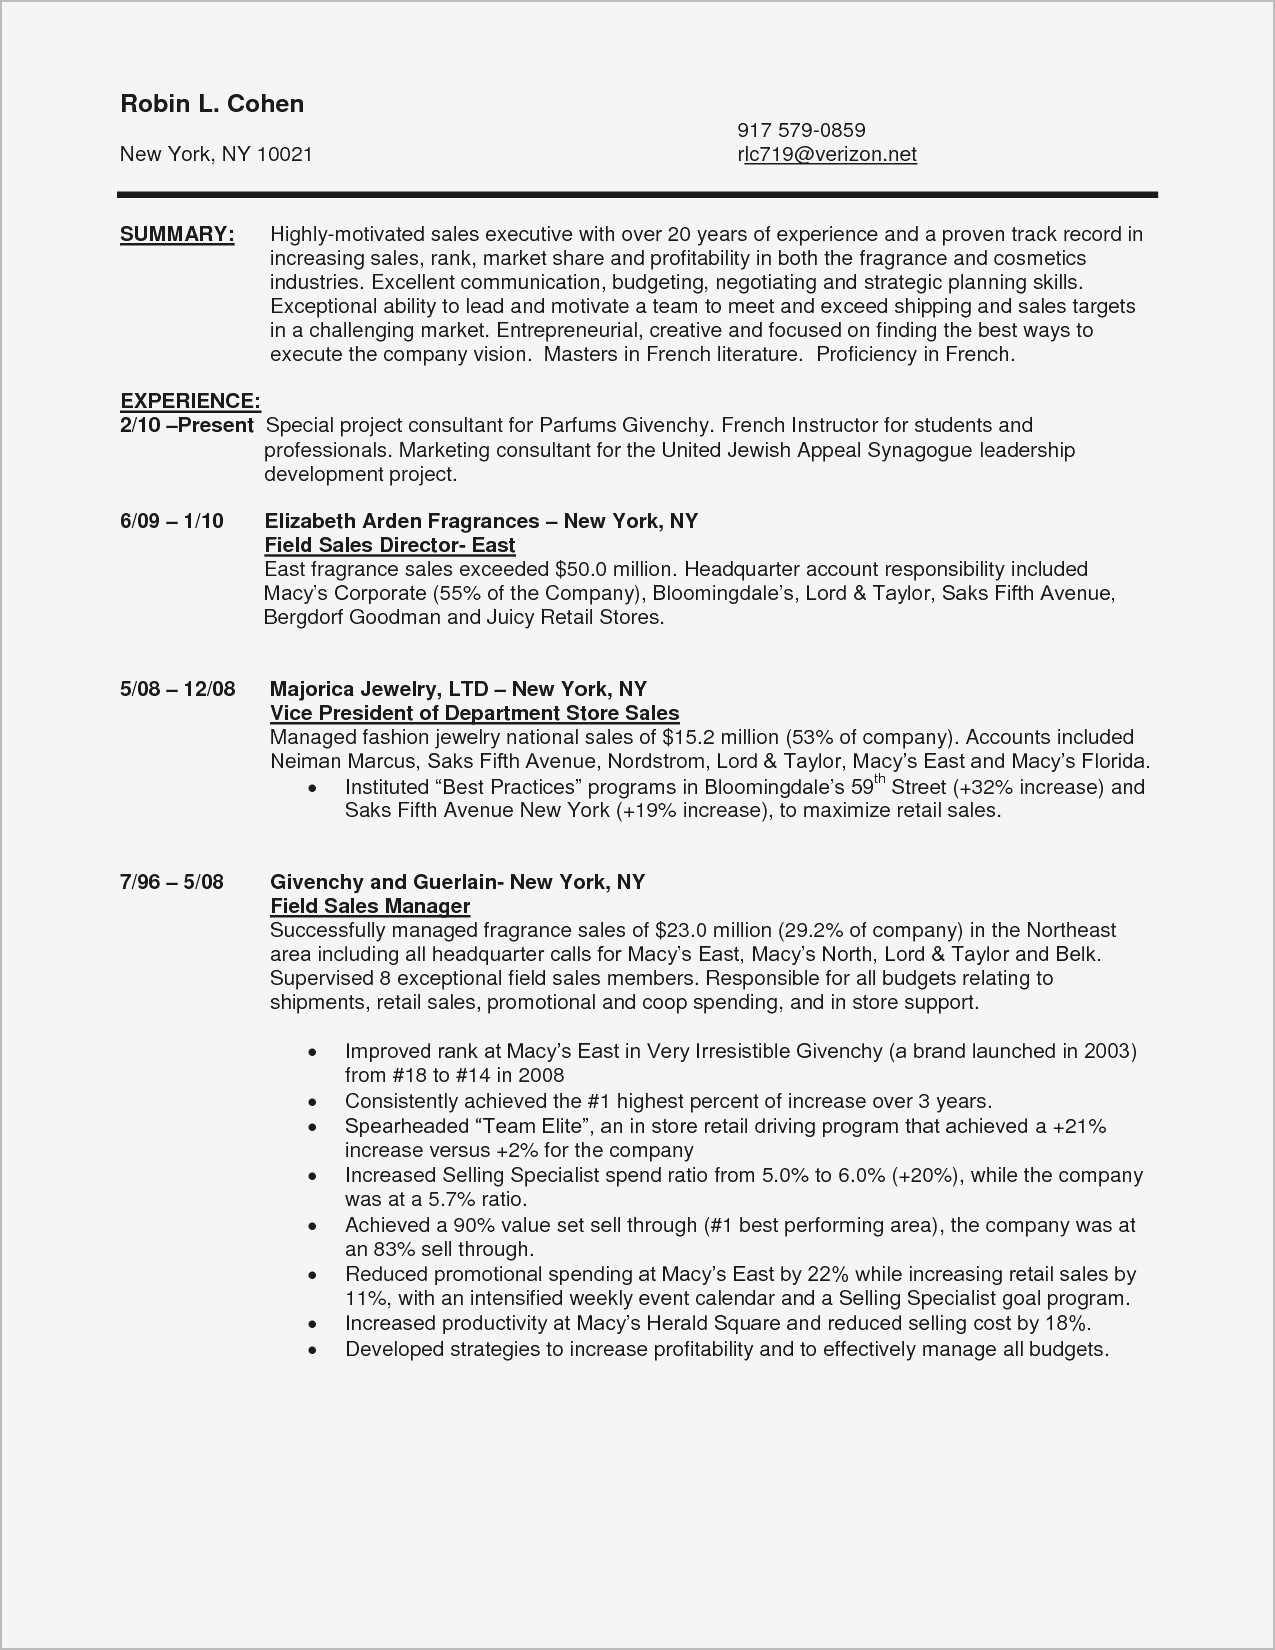 internal resume examples example-Resume For Internal Promotion Template Sample Pdf Beautiful American Resume Sample New Student Resume 0d Wallpapers 42 17-f